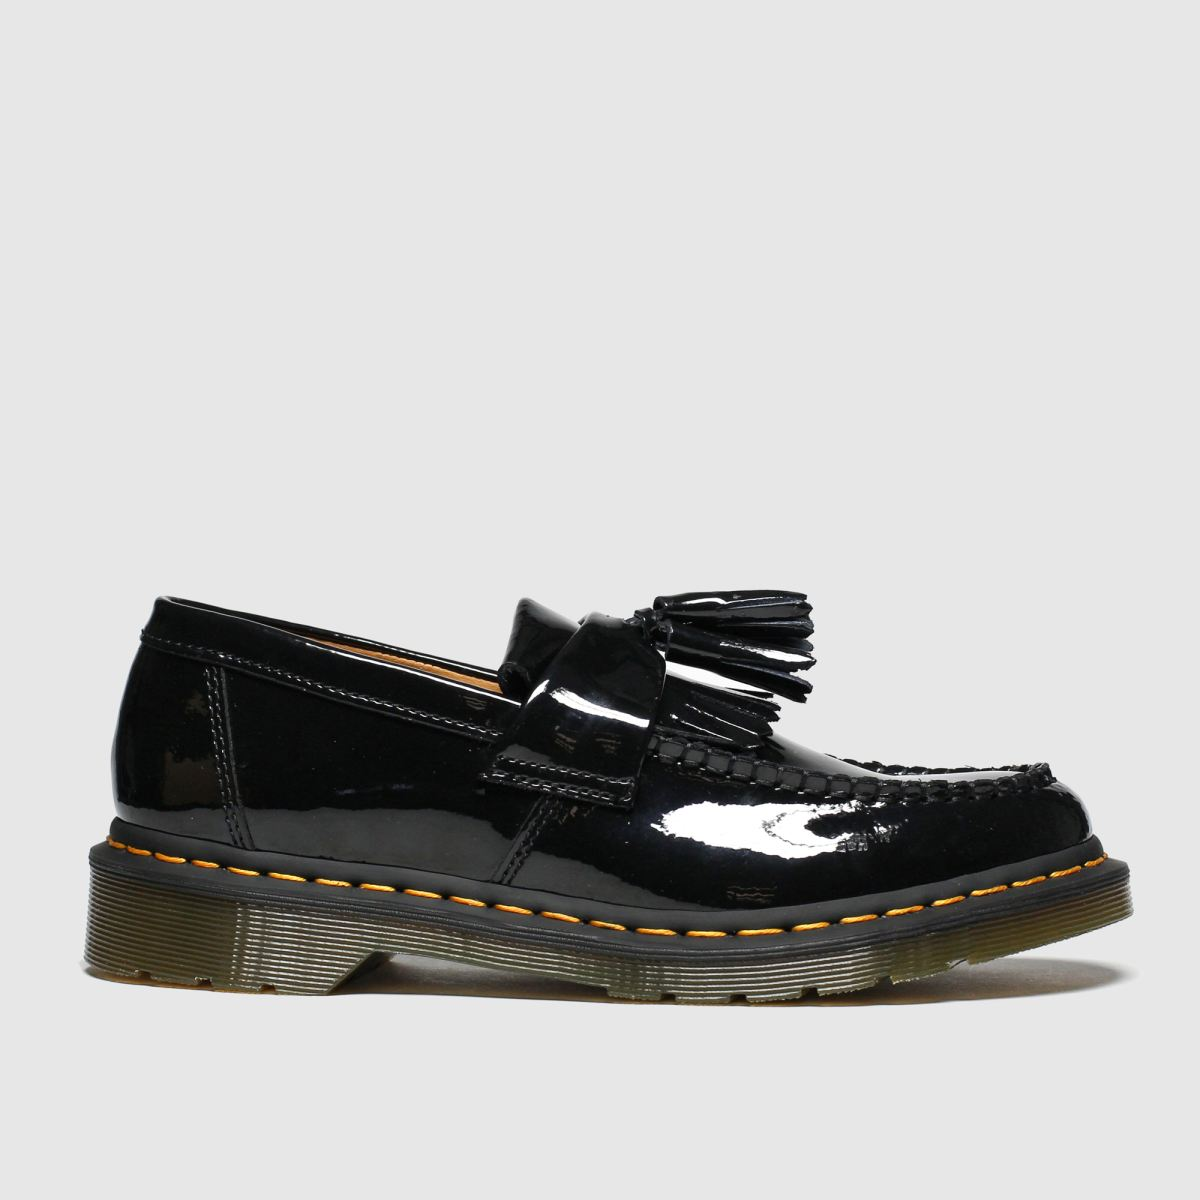 Dr Martens Black Adrian Flat Shoes